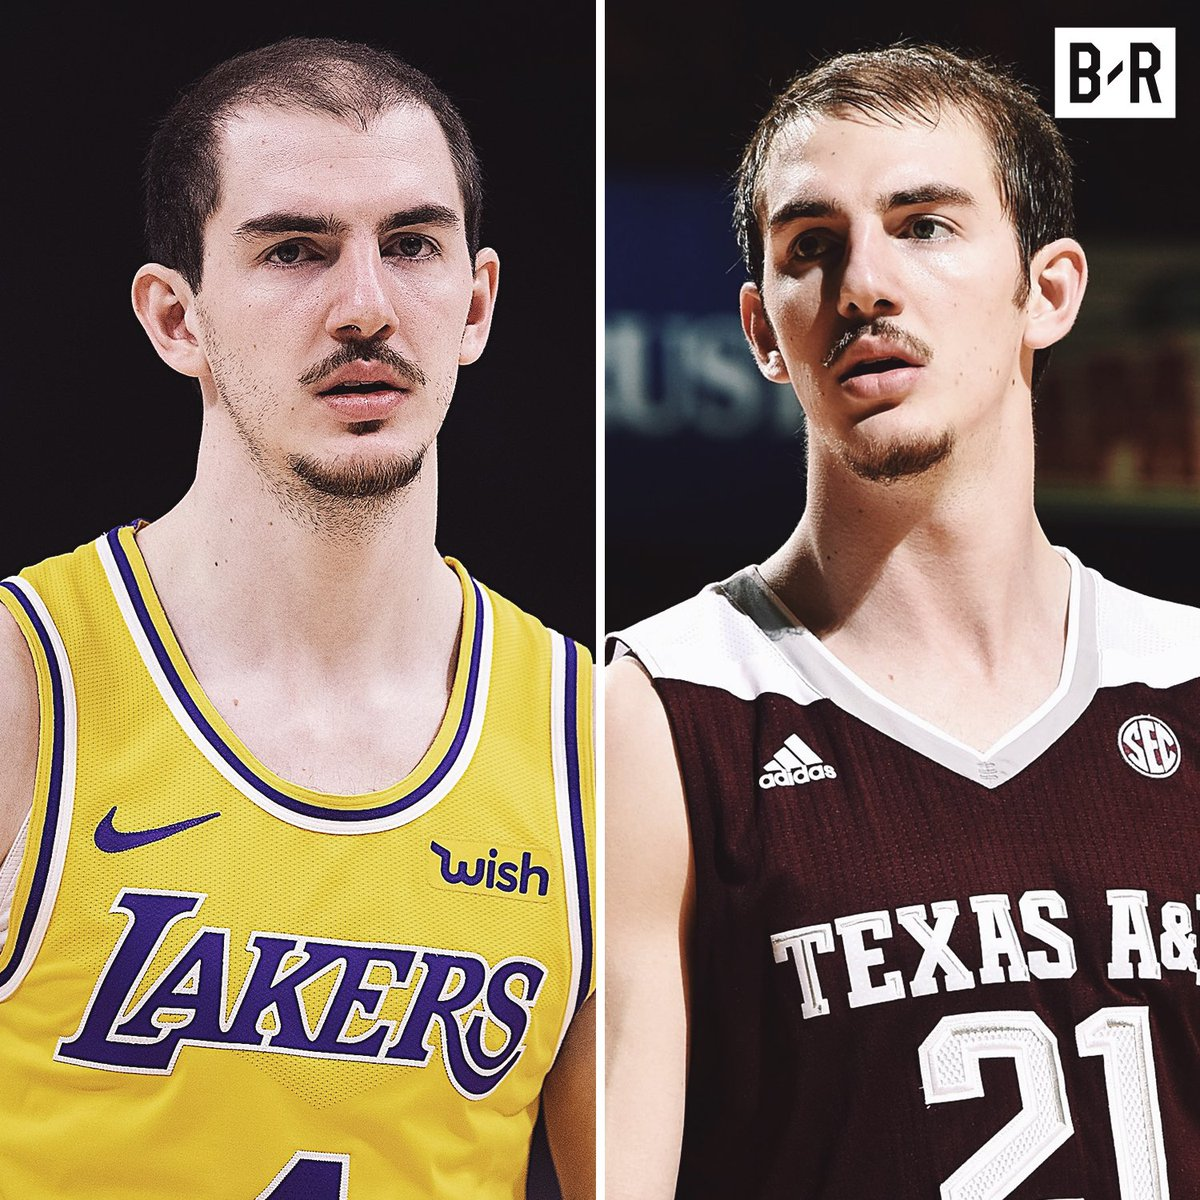 Alex Caruso dropped a career-high 32 last night. Where'd he come from?  - 8 PPG at Texas A&M - Scored over 25 once - Undrafted - Waived by OKC - Summer League star - Tore up the G-League - First Lakers two-way contract